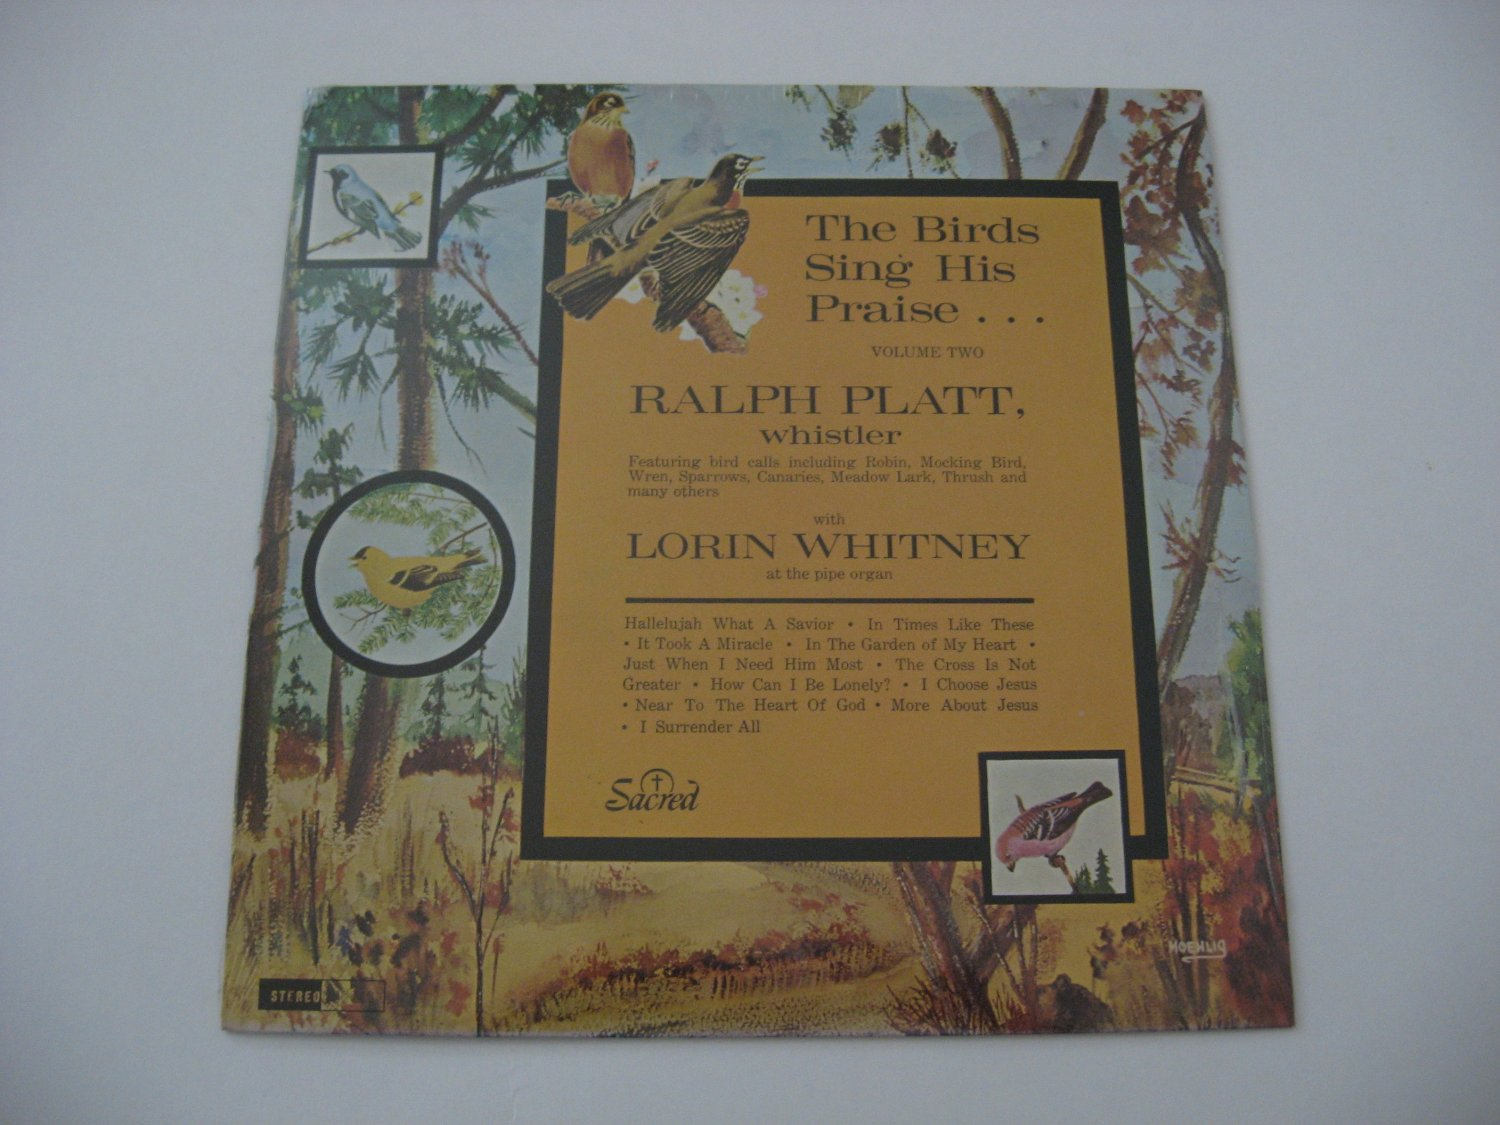 Lorin Whitney - FACTORY SEALED! - The Birds Sing His Praise - Volume 2 - 1965 (Vinyl Record)